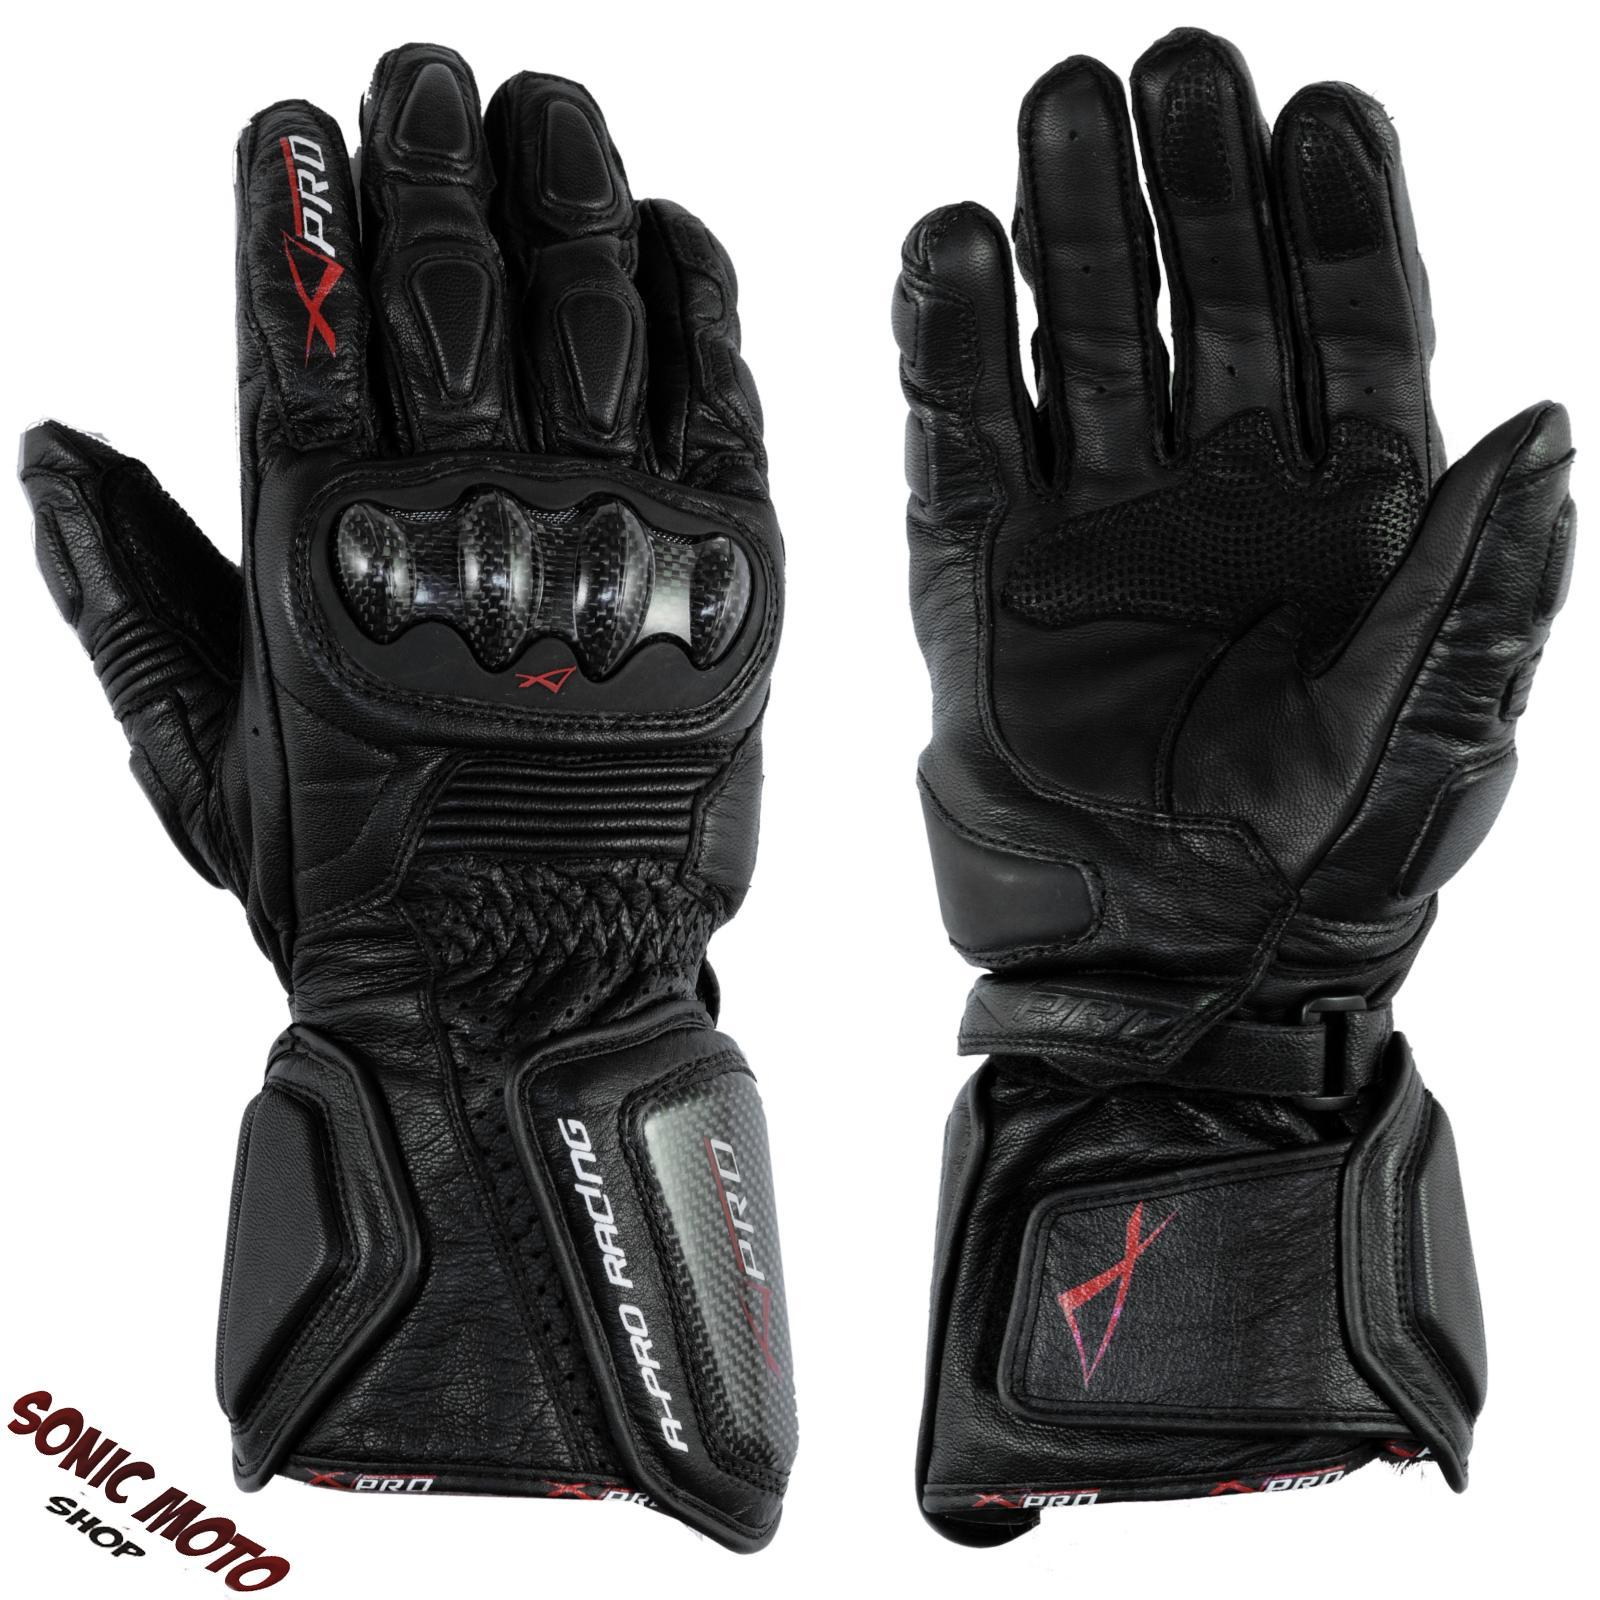 Motorcycle knuckle gloves - Motorcycle Biker Racing Sports Leather Riding Gloves Protection